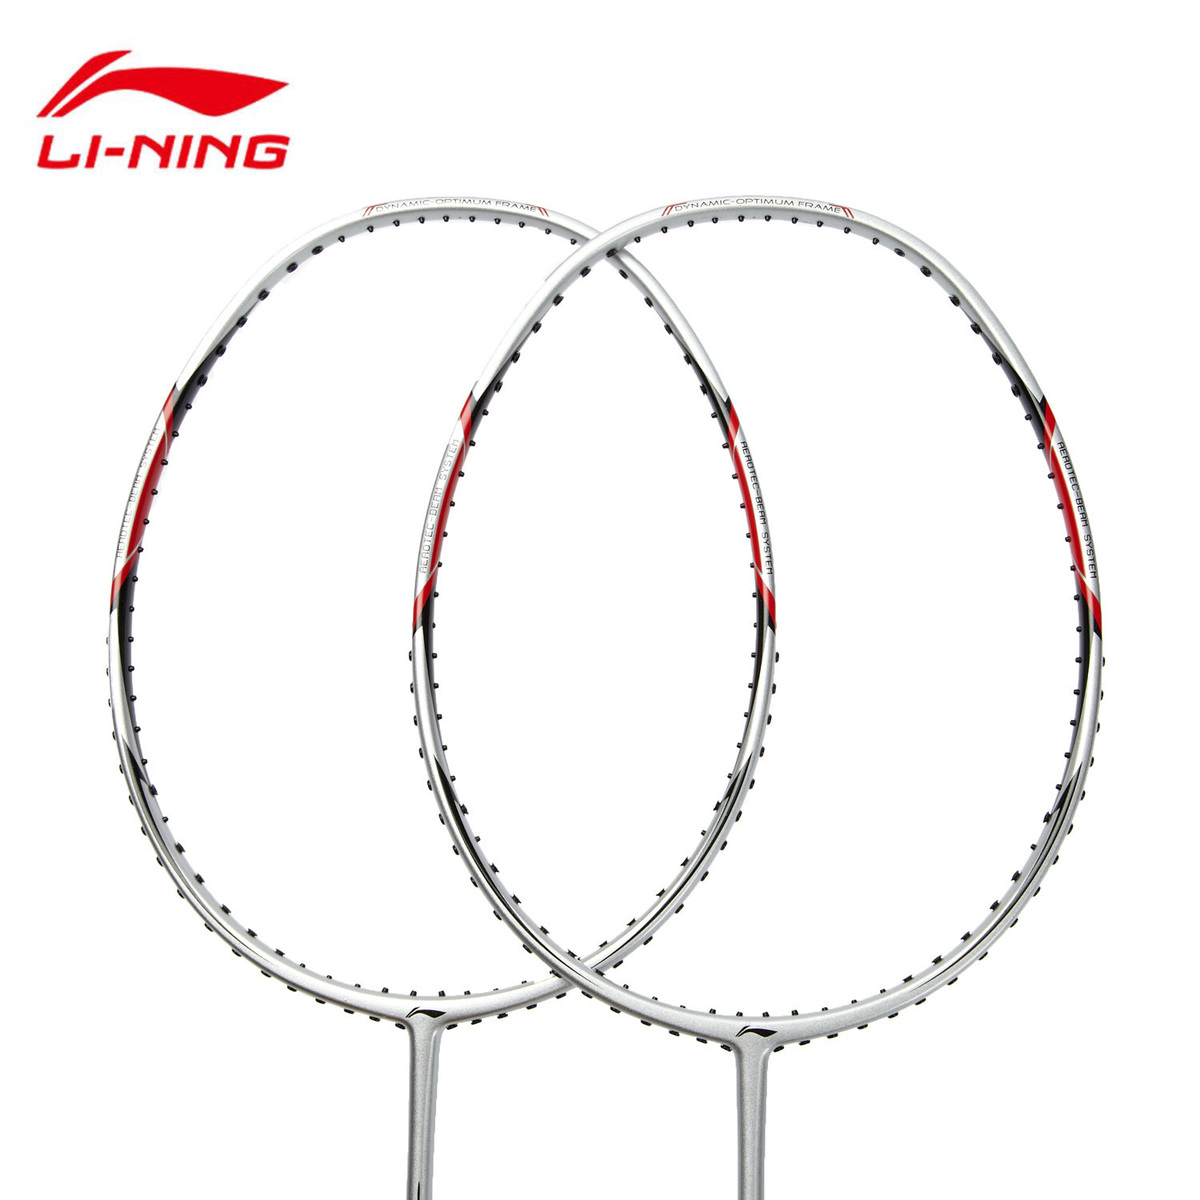 1Pair Lining Badminton Rackets Super Light Full Carbon Fiber Ball Control Type Li-Ning AYPG354 With Stringing Service L784 li ning u sonic 17 badminton rackets single carbon fiber professional lining rackets aypm226 zyf214